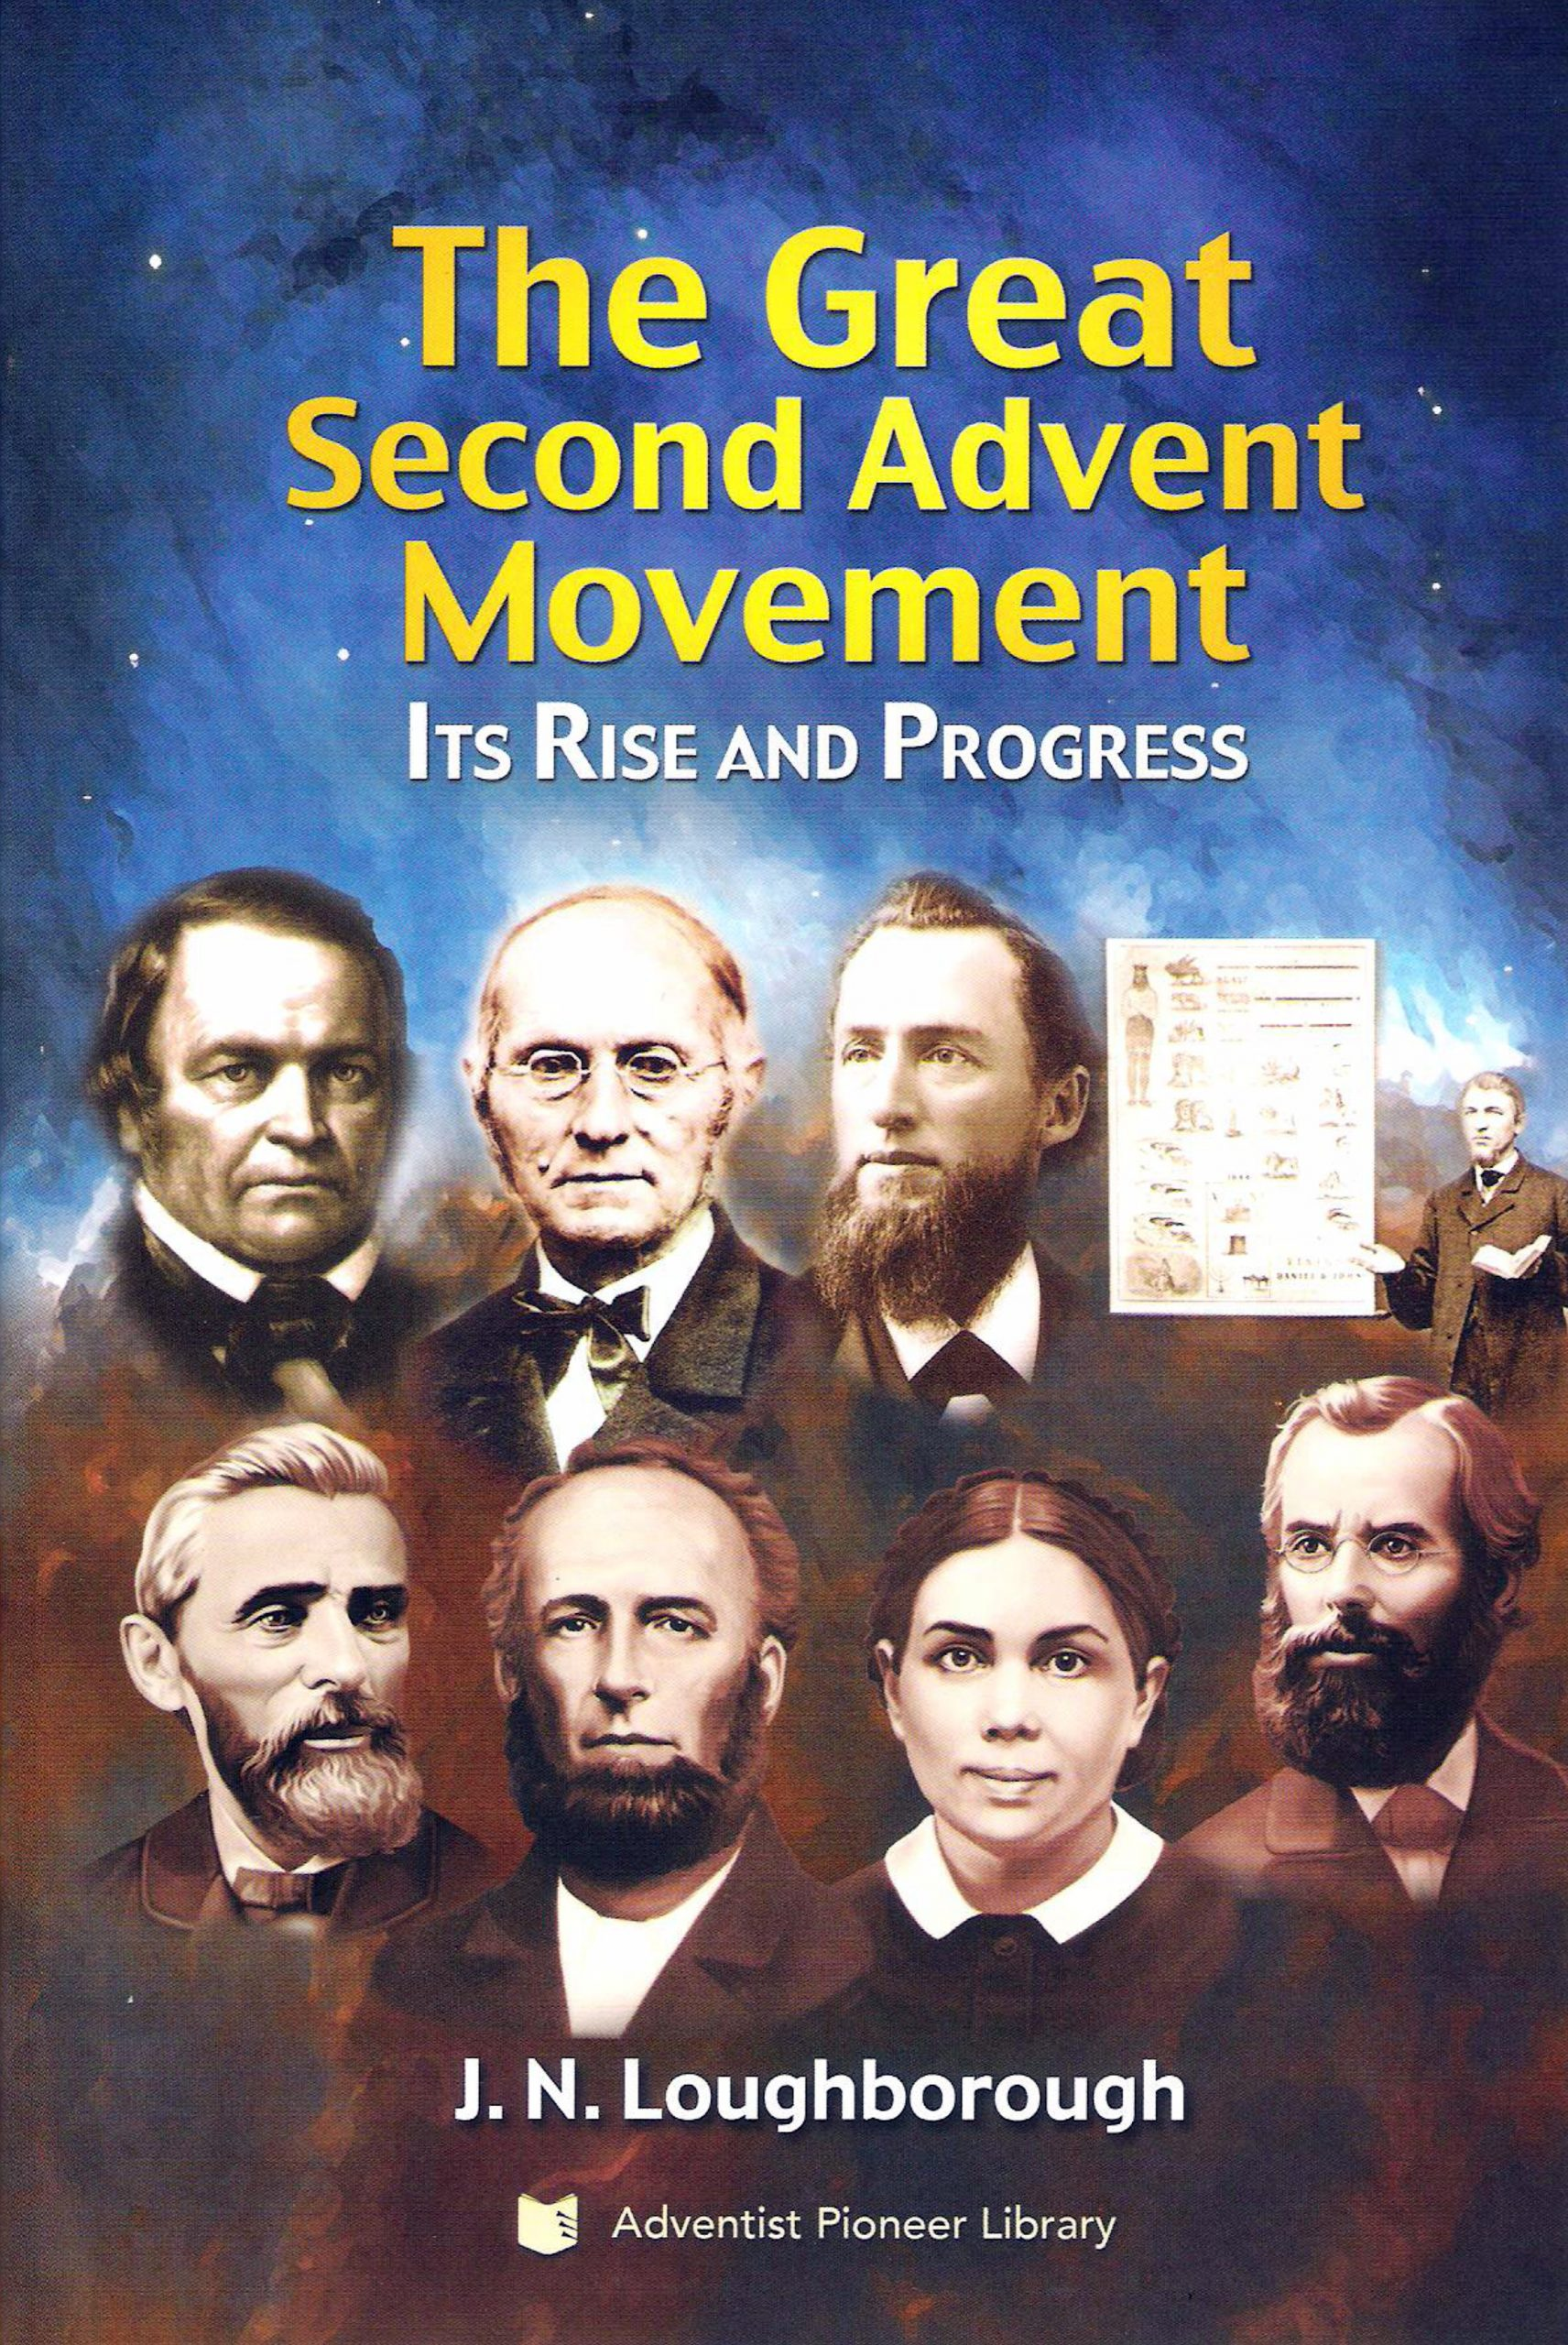 The Great Second Advent Movement